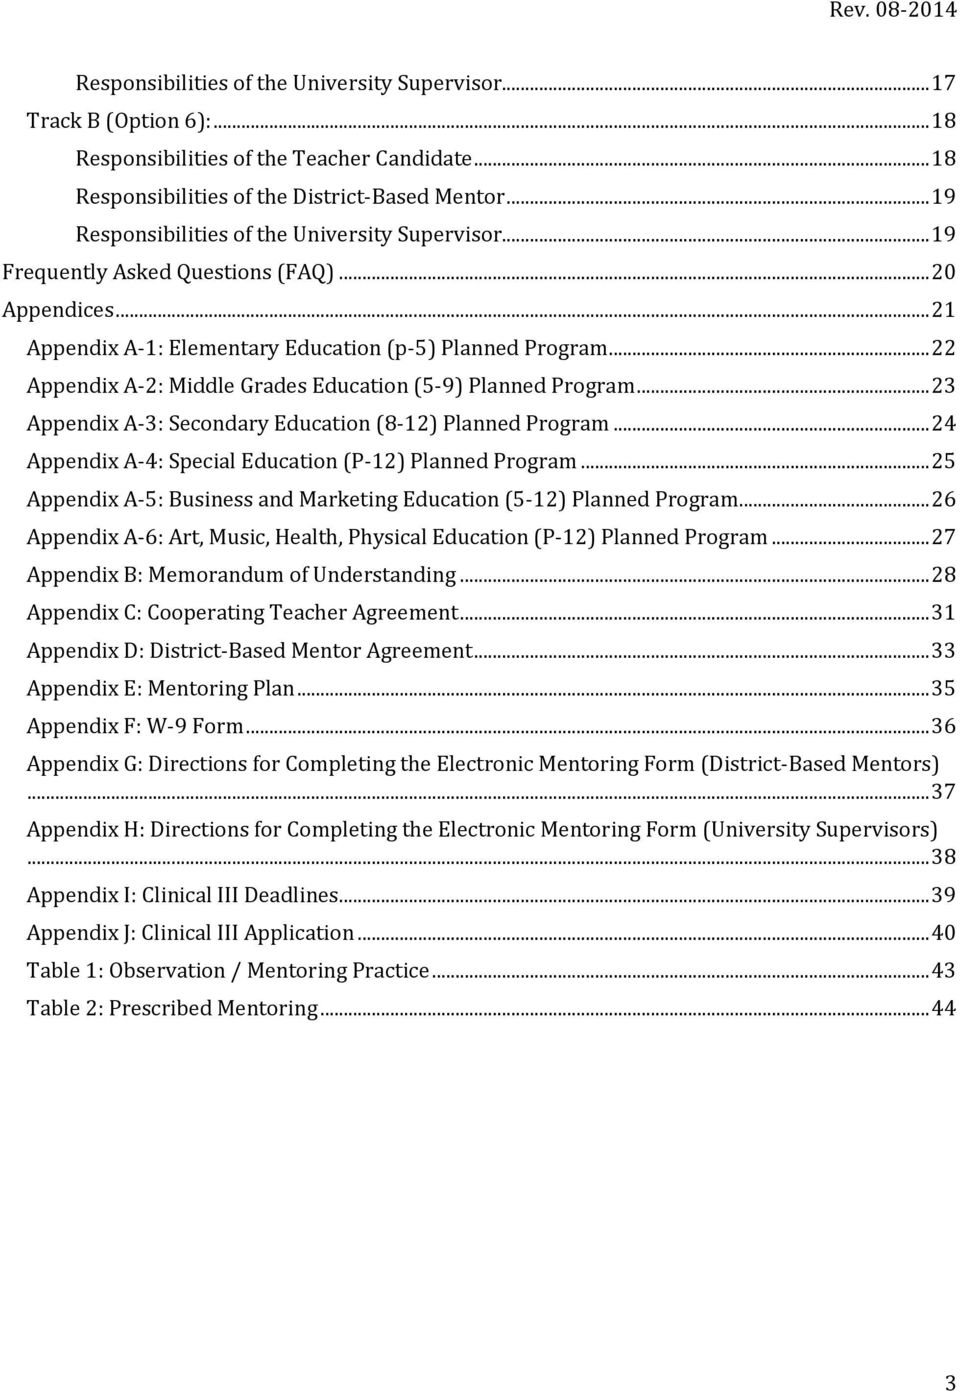 .. 22 Appendix A-2: Middle Grades Education (5-9) Planned Program... 23 Appendix A-3: Secondary Education (8-12) Planned Program... 24 Appendix A-4: Special Education (P-12) Planned Program.